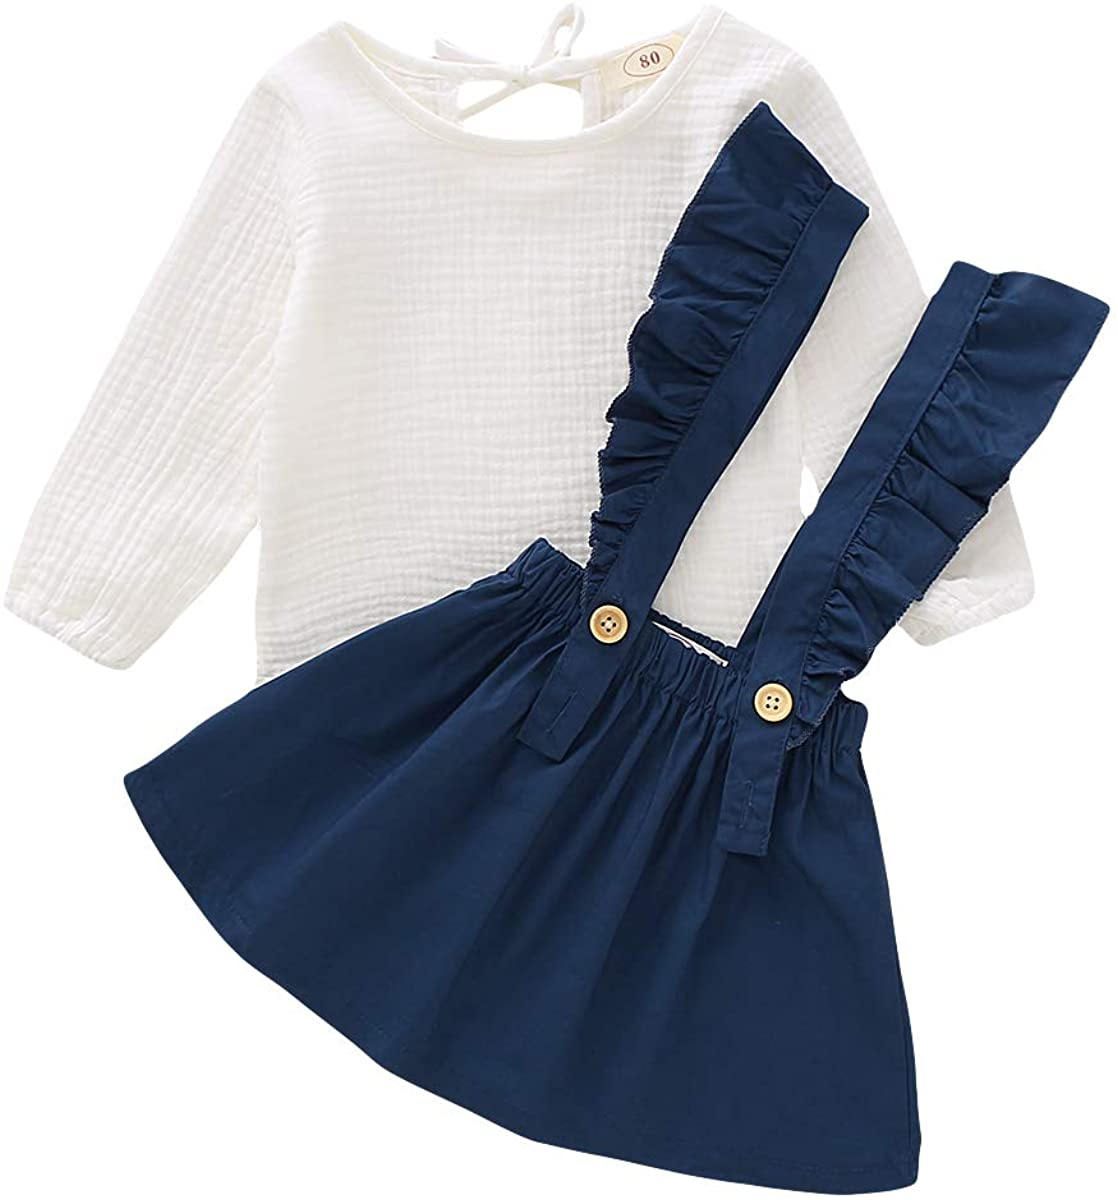 DaMohony Baby Girl Skirt Outfit Girls Clothing Set Cotton /& Linen Long Sleeve Tops Ruffle Suspender Skirt 2Pcs Toddler Outfits for Girls